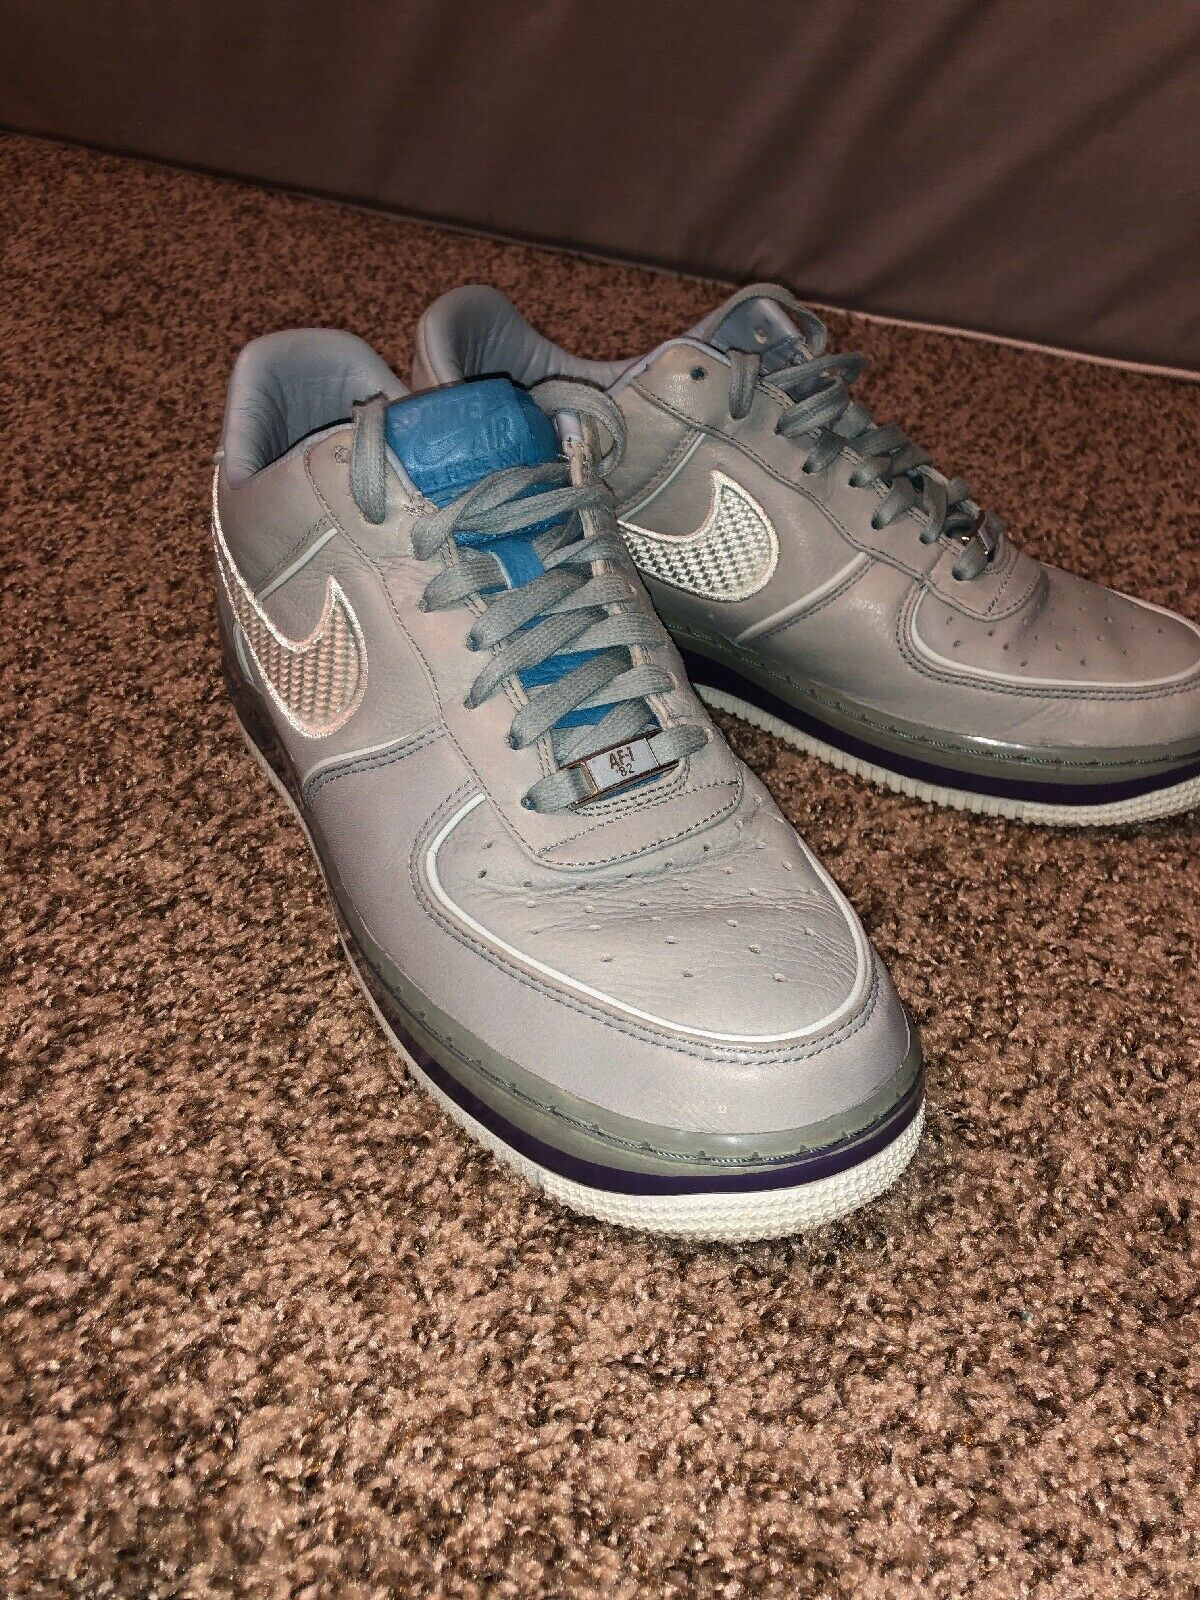 Nike Air Force 1 XXV Size 10 shoes Vintage AF-1 82 Limited Edition